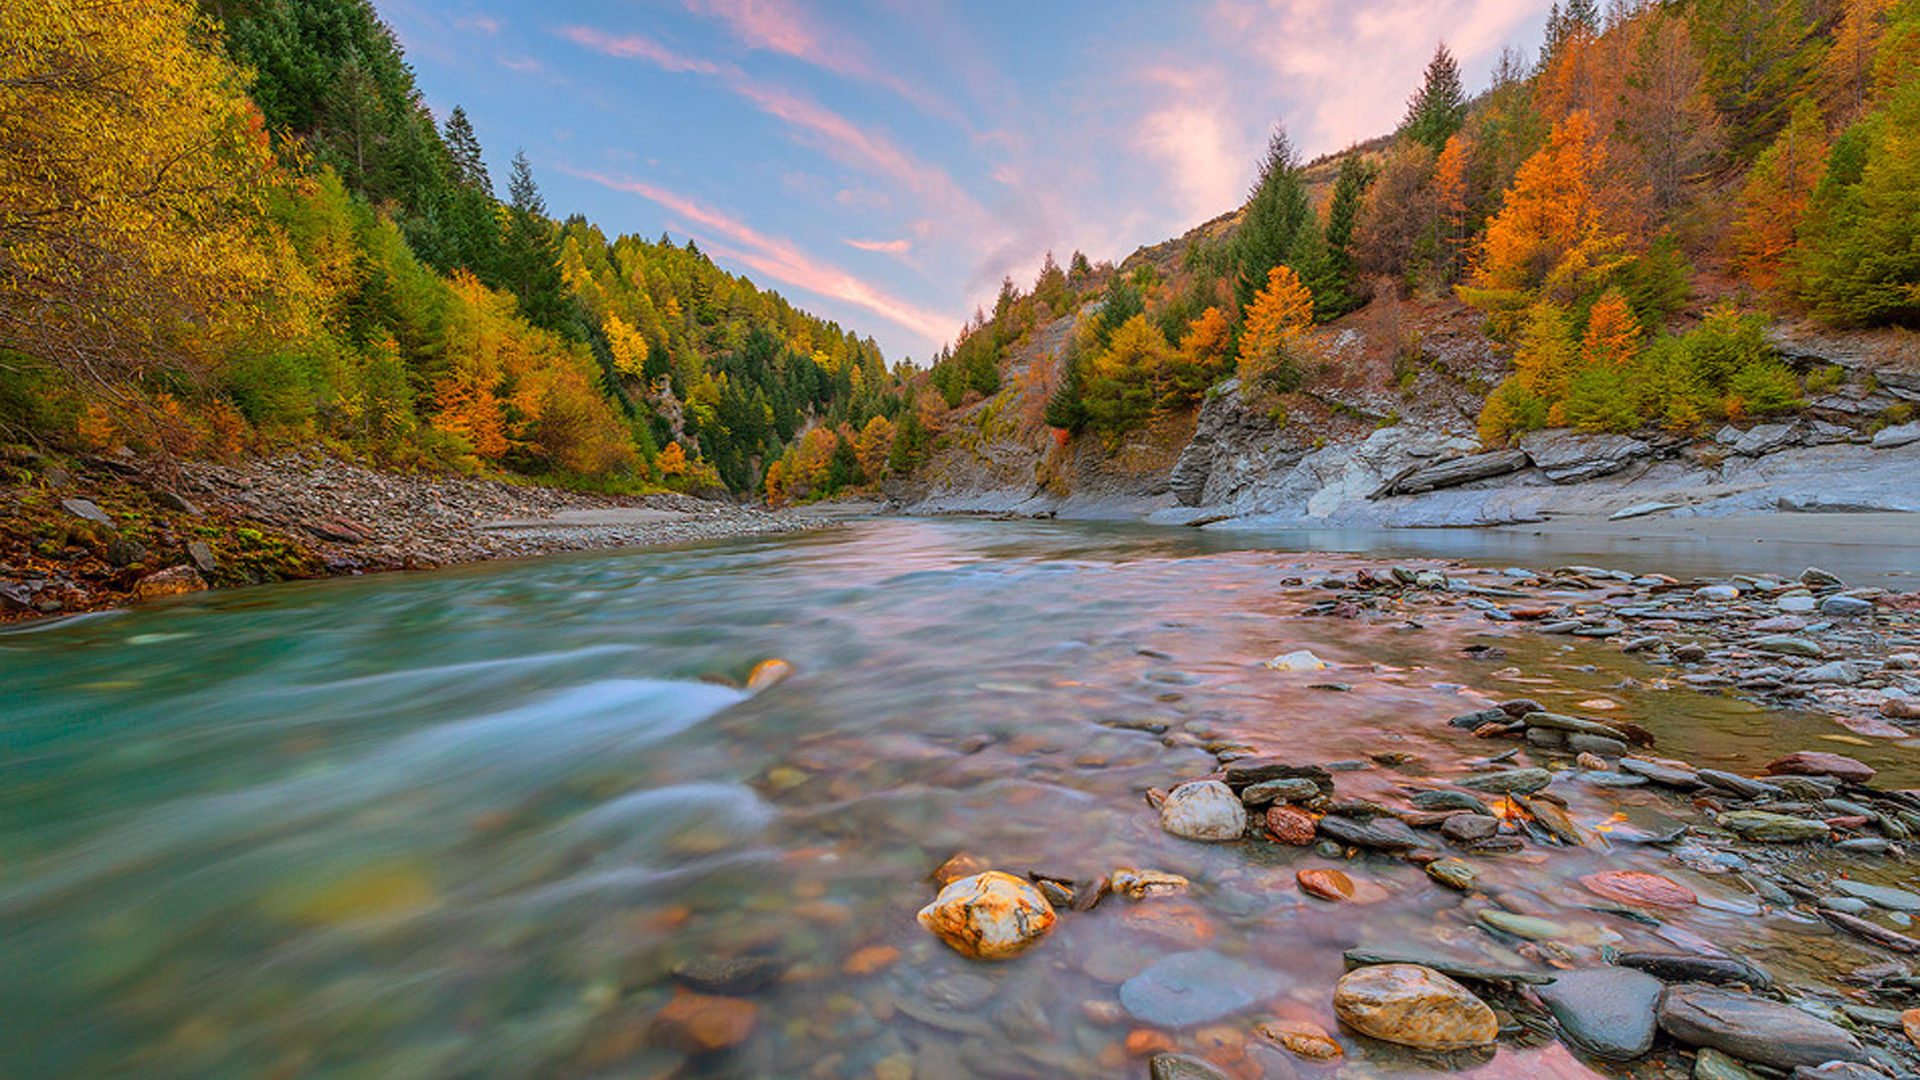 Foggy Fall Wallpaper Canyon In Autumn Colors Mountain River Stones Gravel Tree